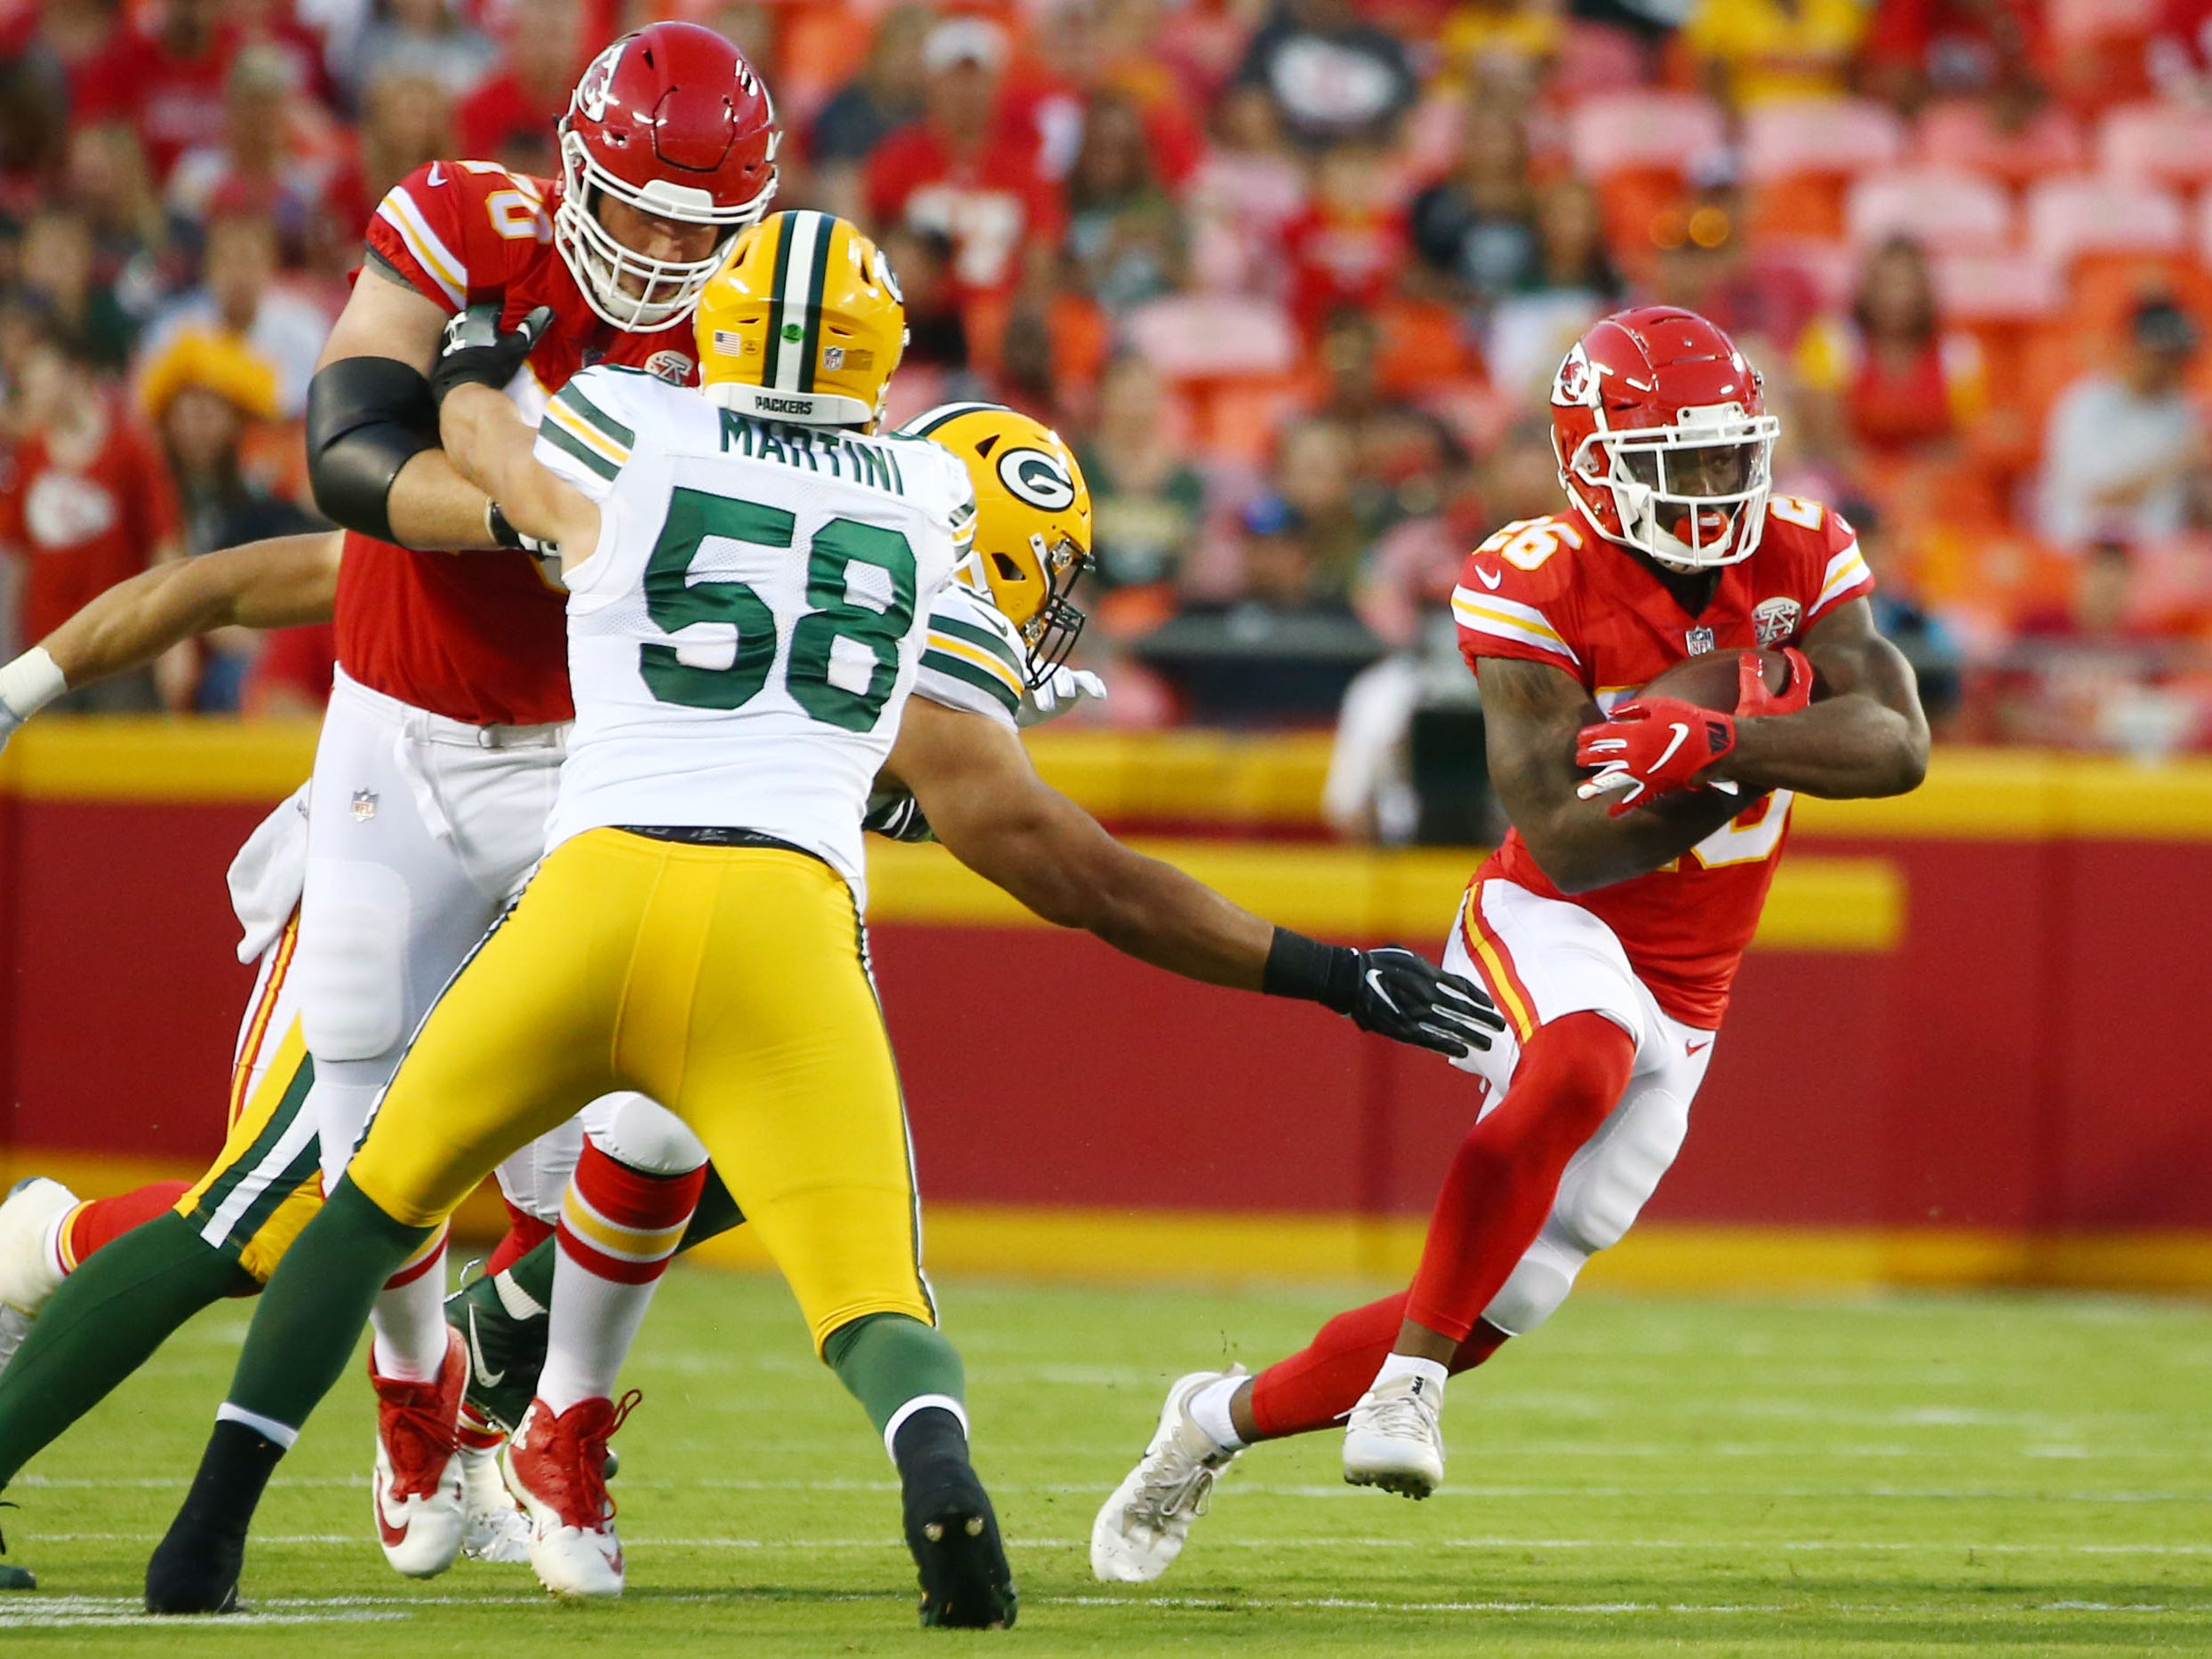 Aug 30, 2018; Kansas City, MO, USA; Kansas City Chiefs running back Damien Williams (26) runs against the Green Bay Packers in the first half at Arrowhead Stadium.